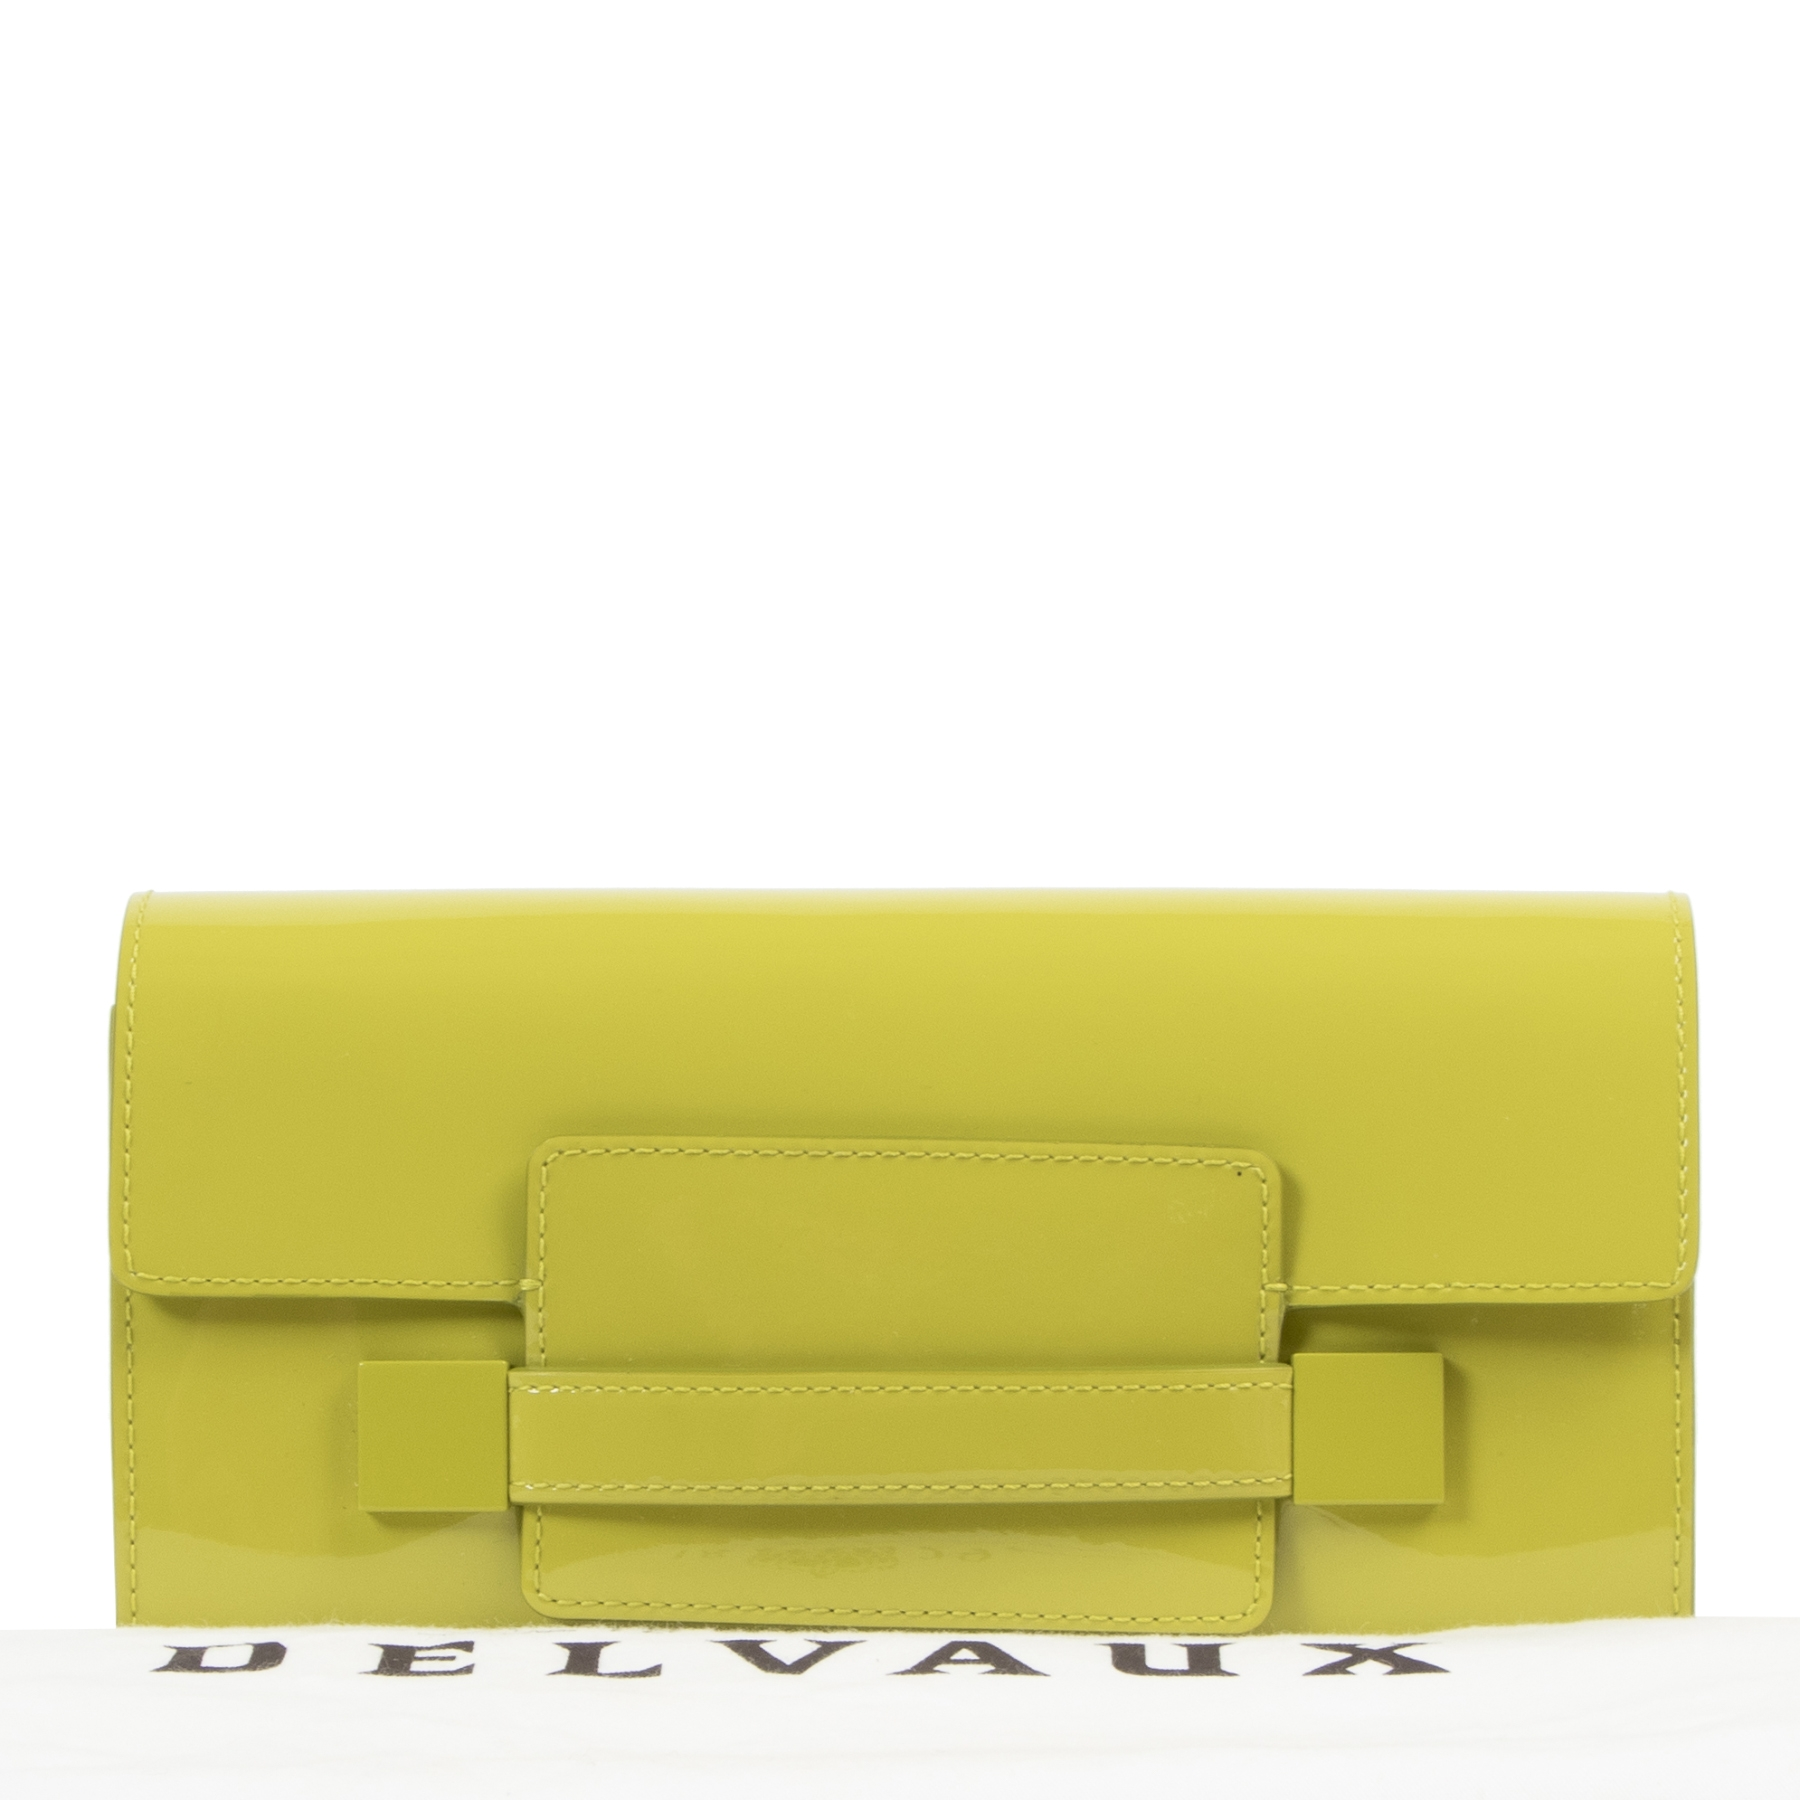 Koop en verkoop uw authentieke designer Delvaux Madame Lime Green Patent Leather Wallet